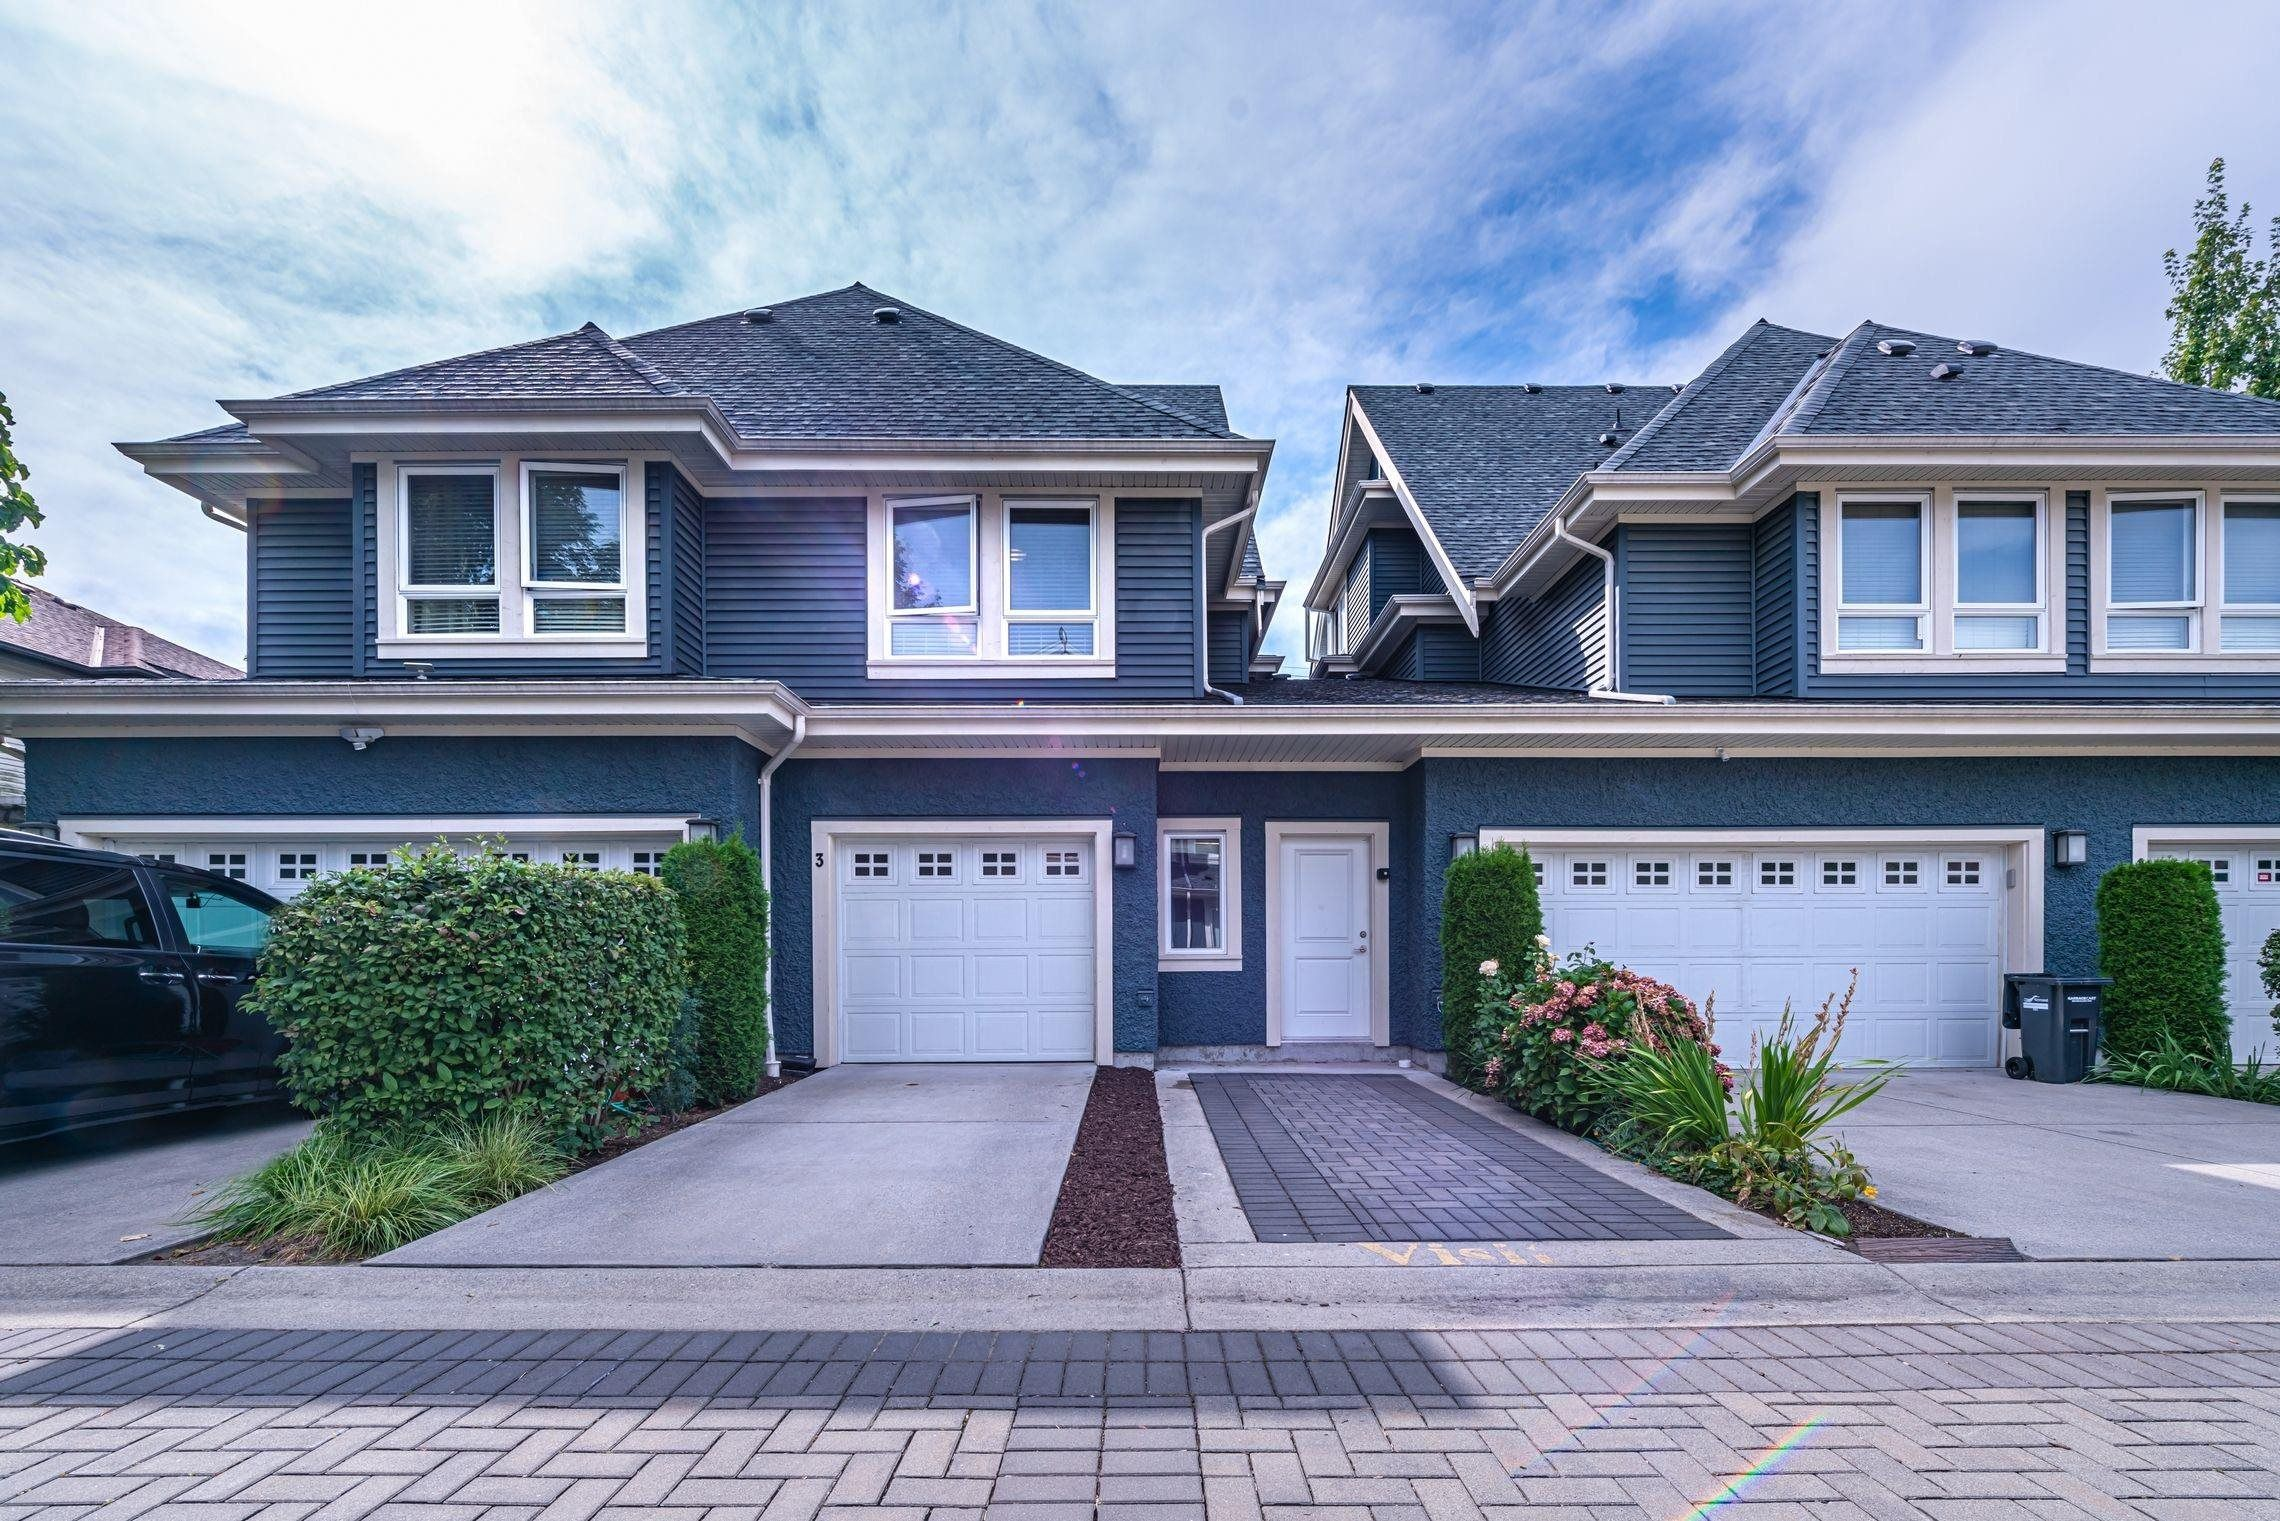 """Main Photo: 3 8000 BOWCOCK Road in Richmond: Garden City Townhouse for sale in """"Cavatina"""" : MLS®# R2615716"""